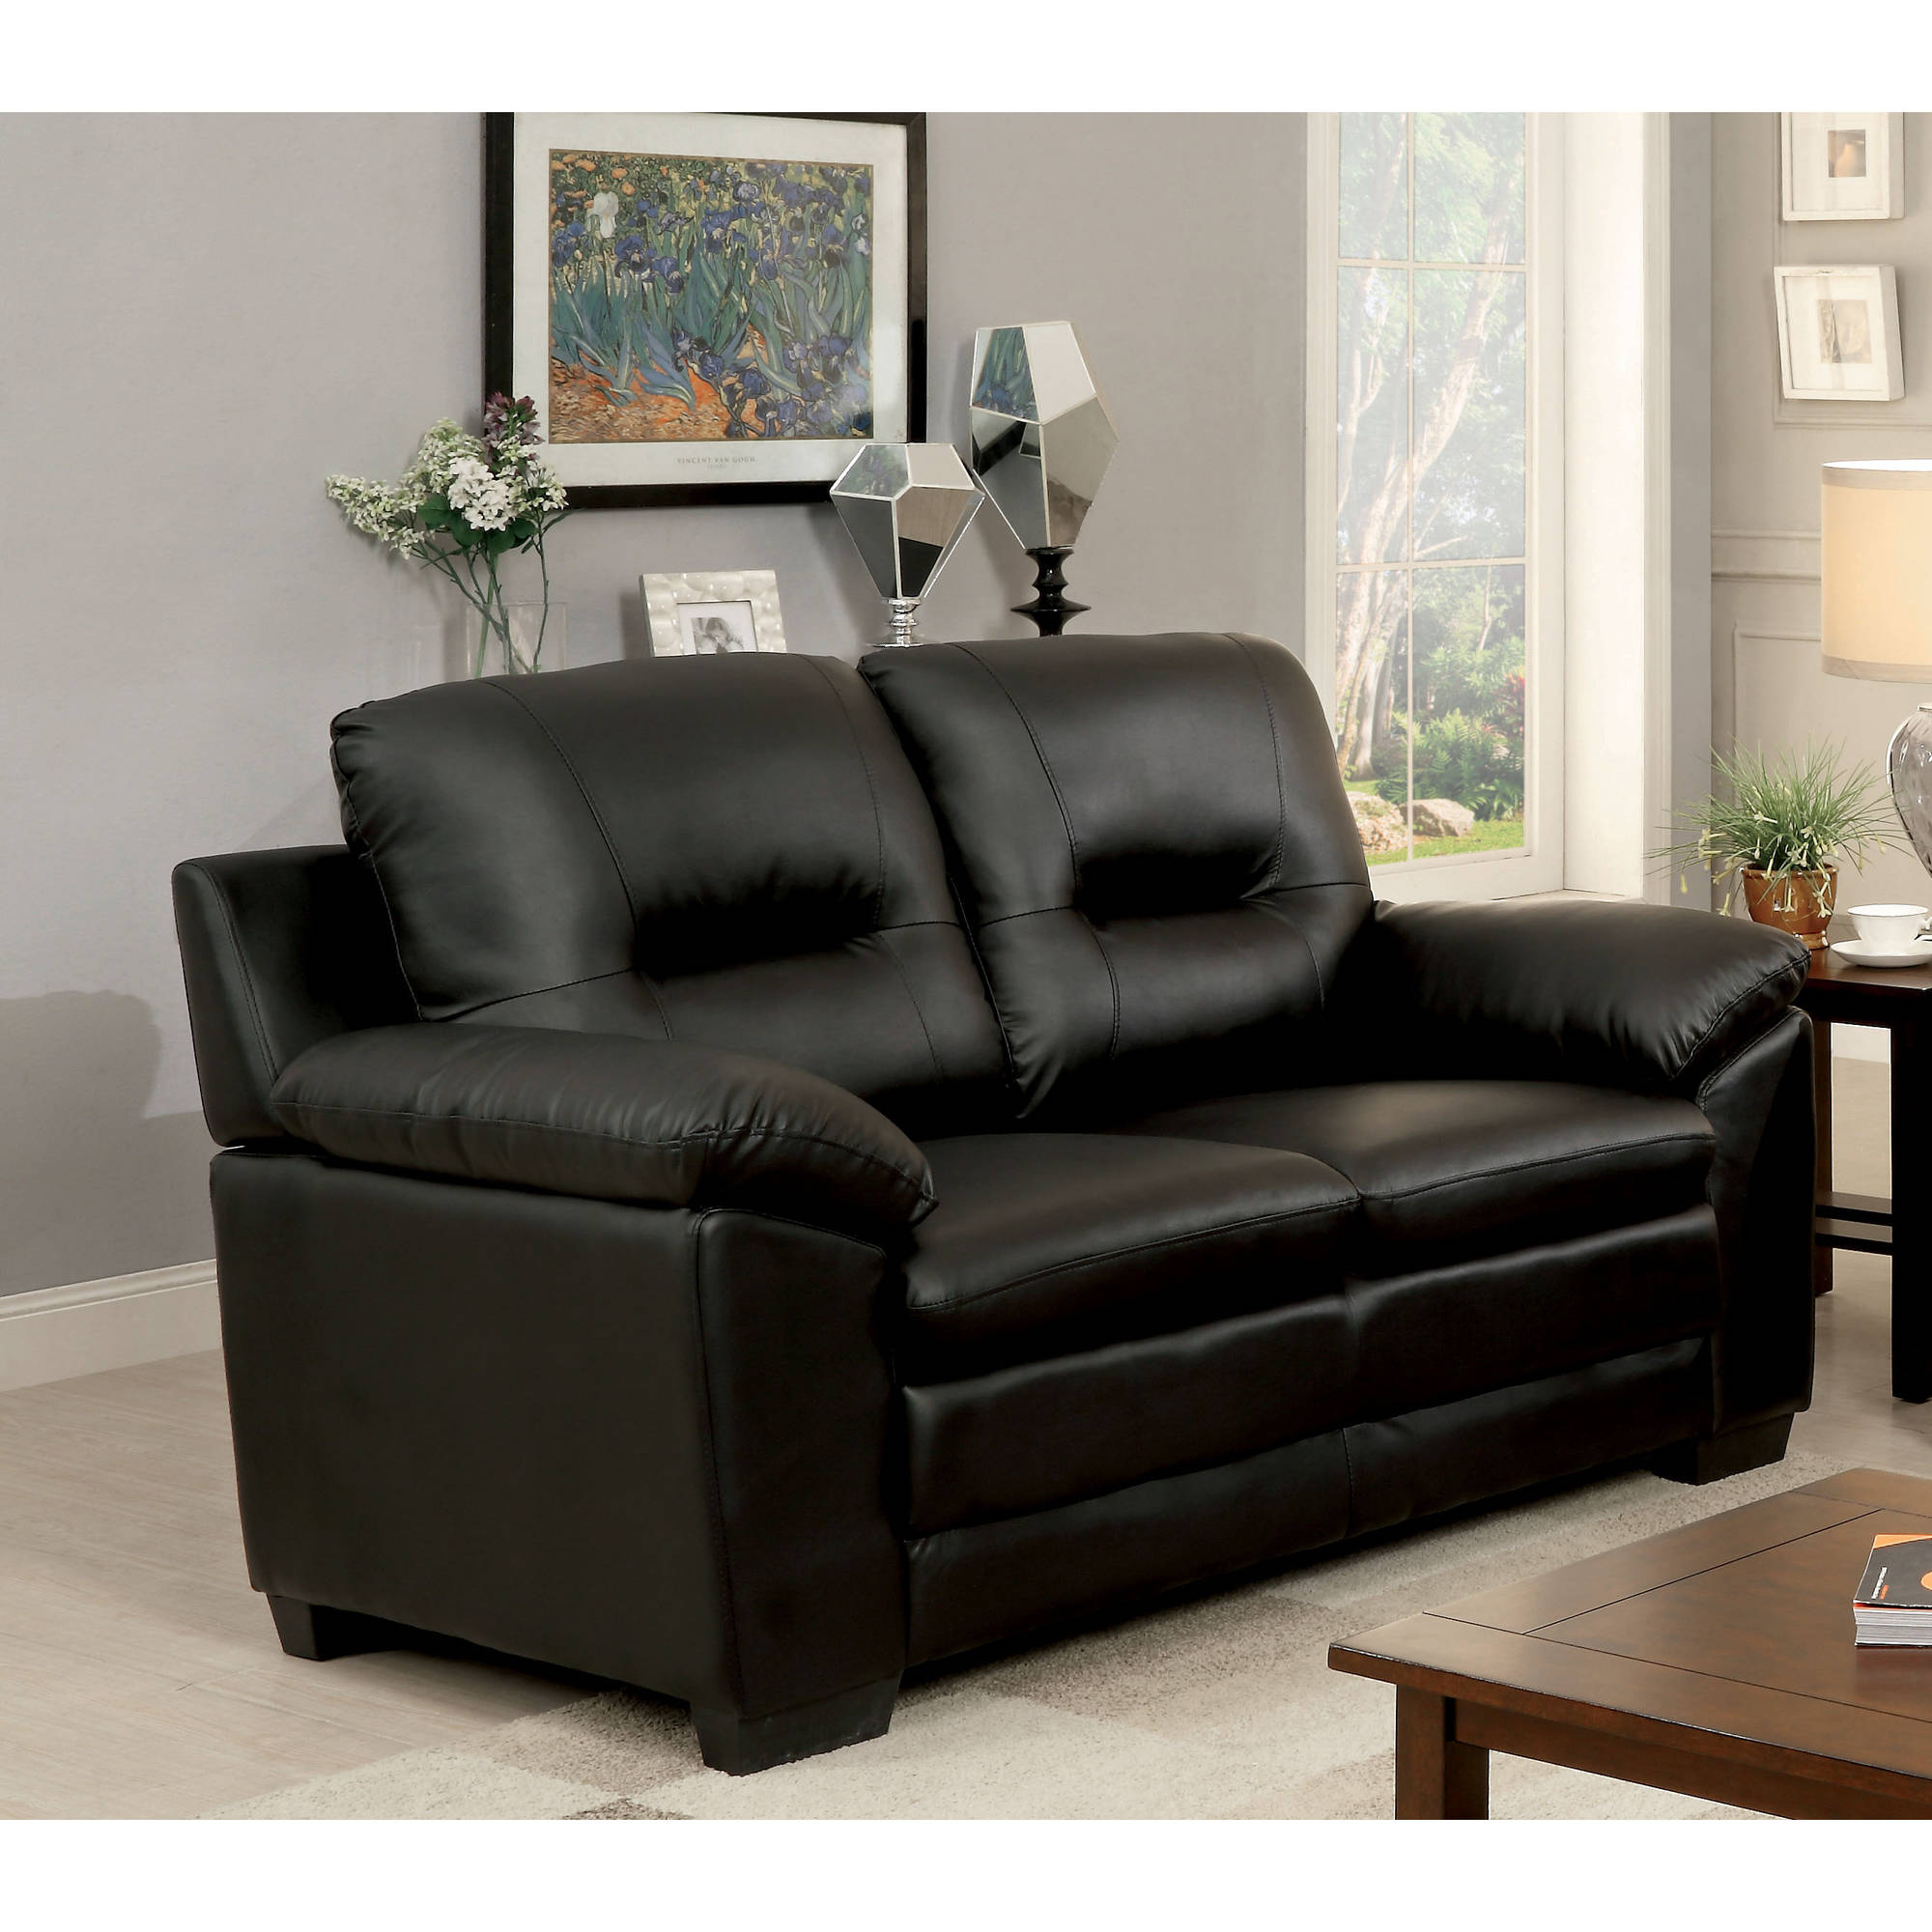 Furniture of America Truman Contemporary Leatherette Loveseat, Multiple Colors